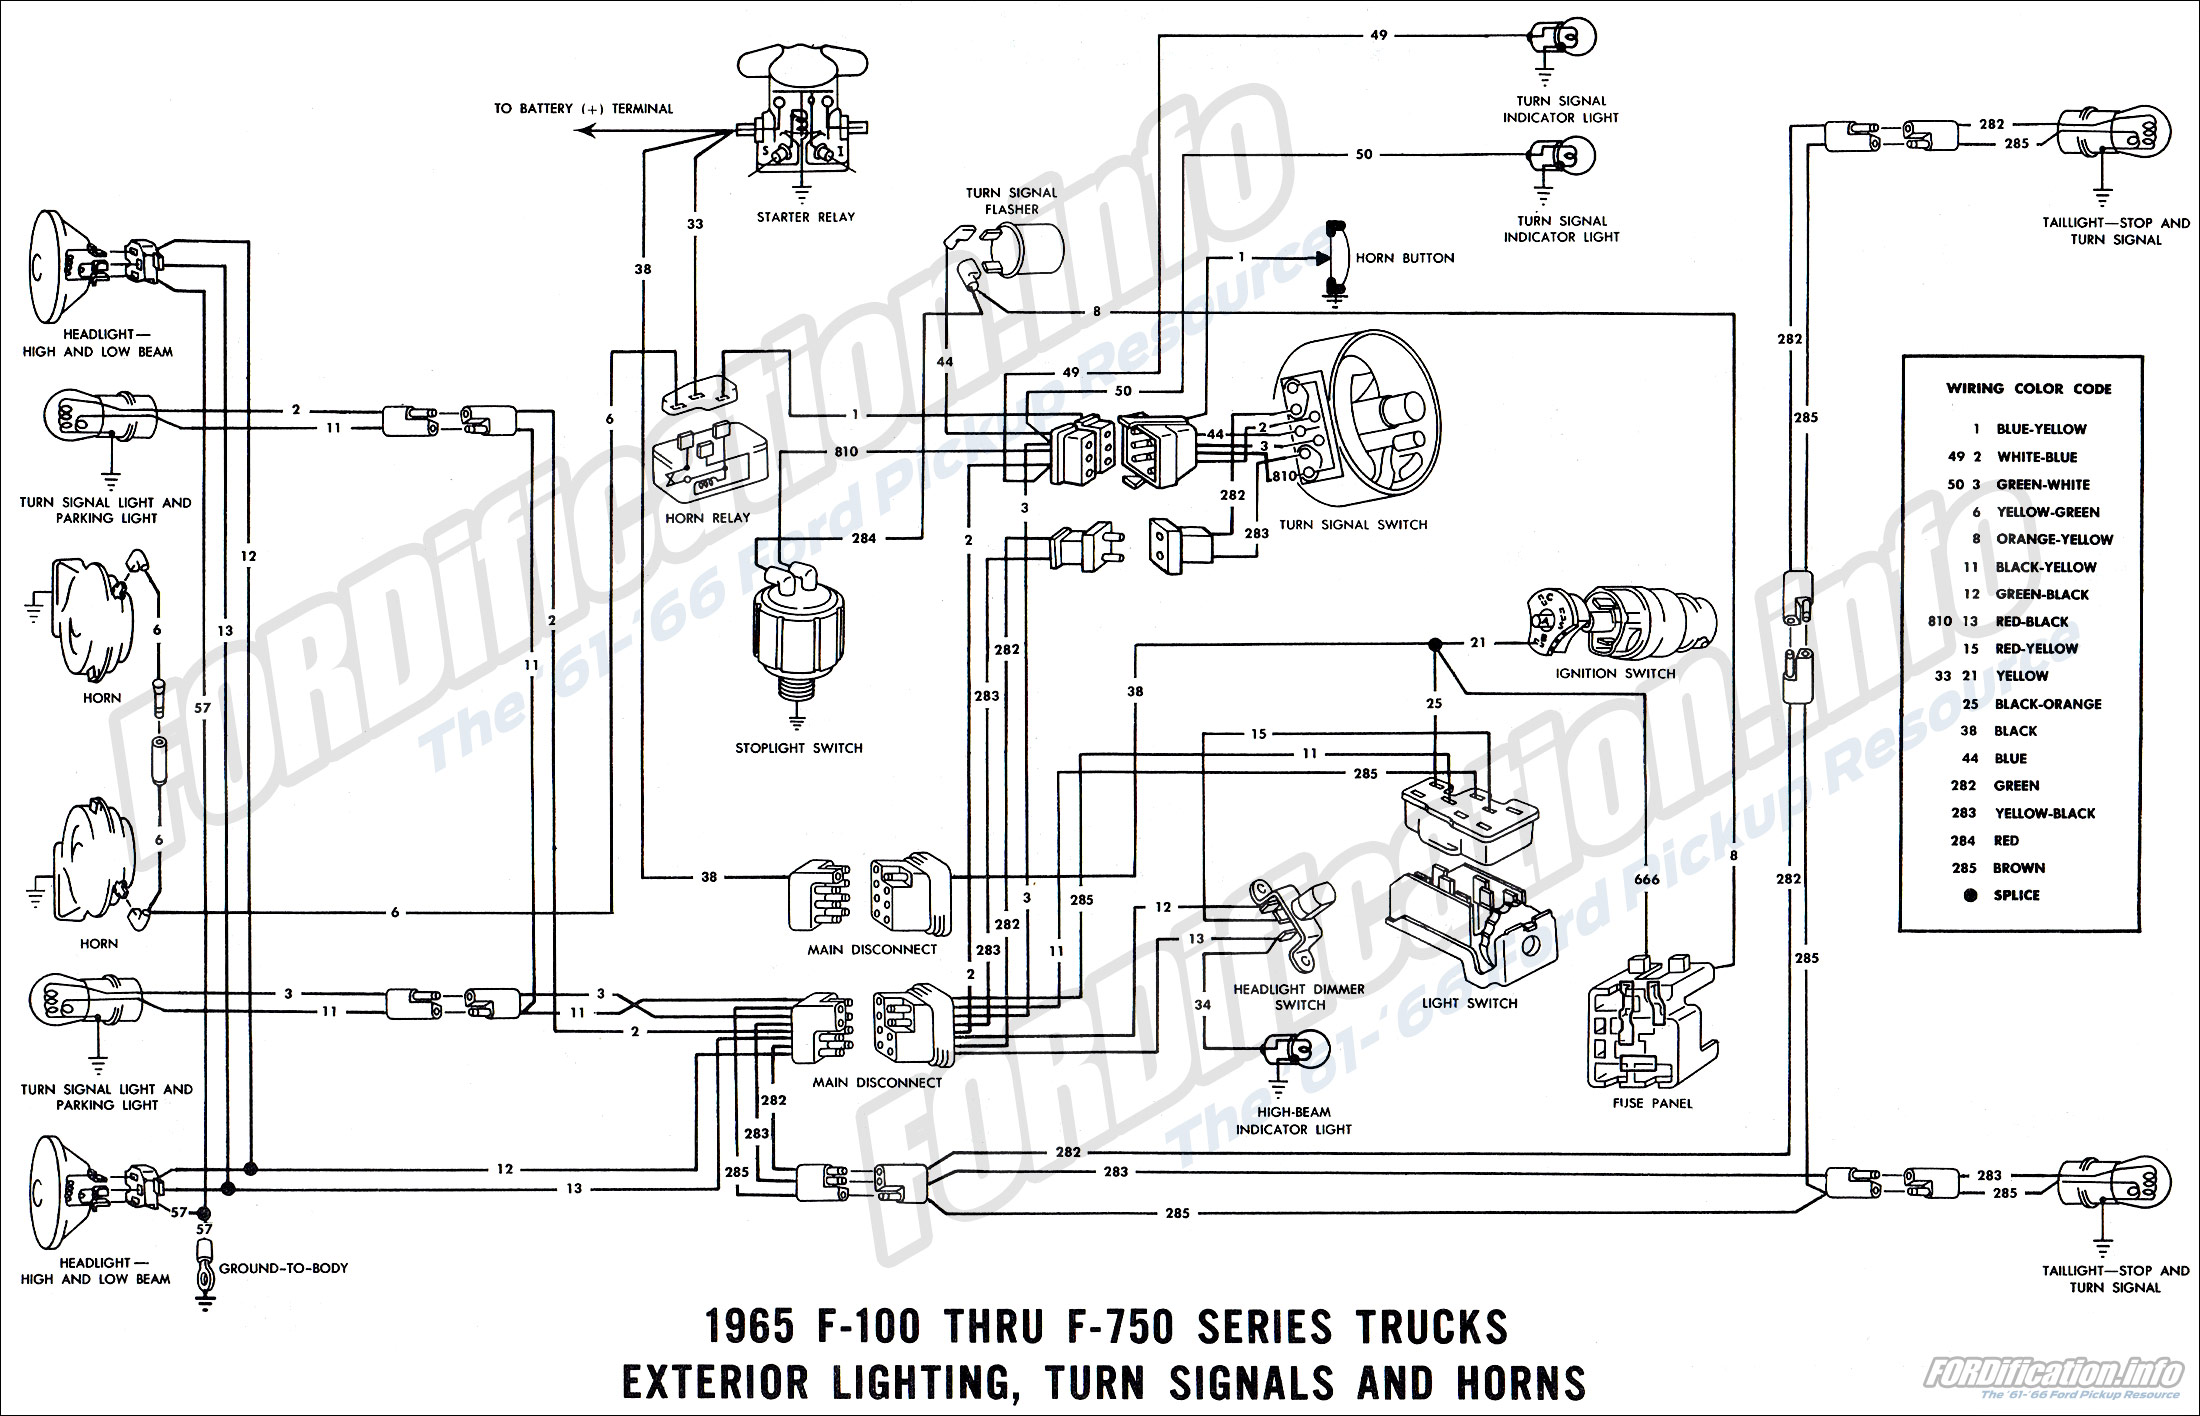 1966 Ford Truck F100 Wiring Diagram - Wiring Diagrams Hidden Fan Wiring Diagram For F on